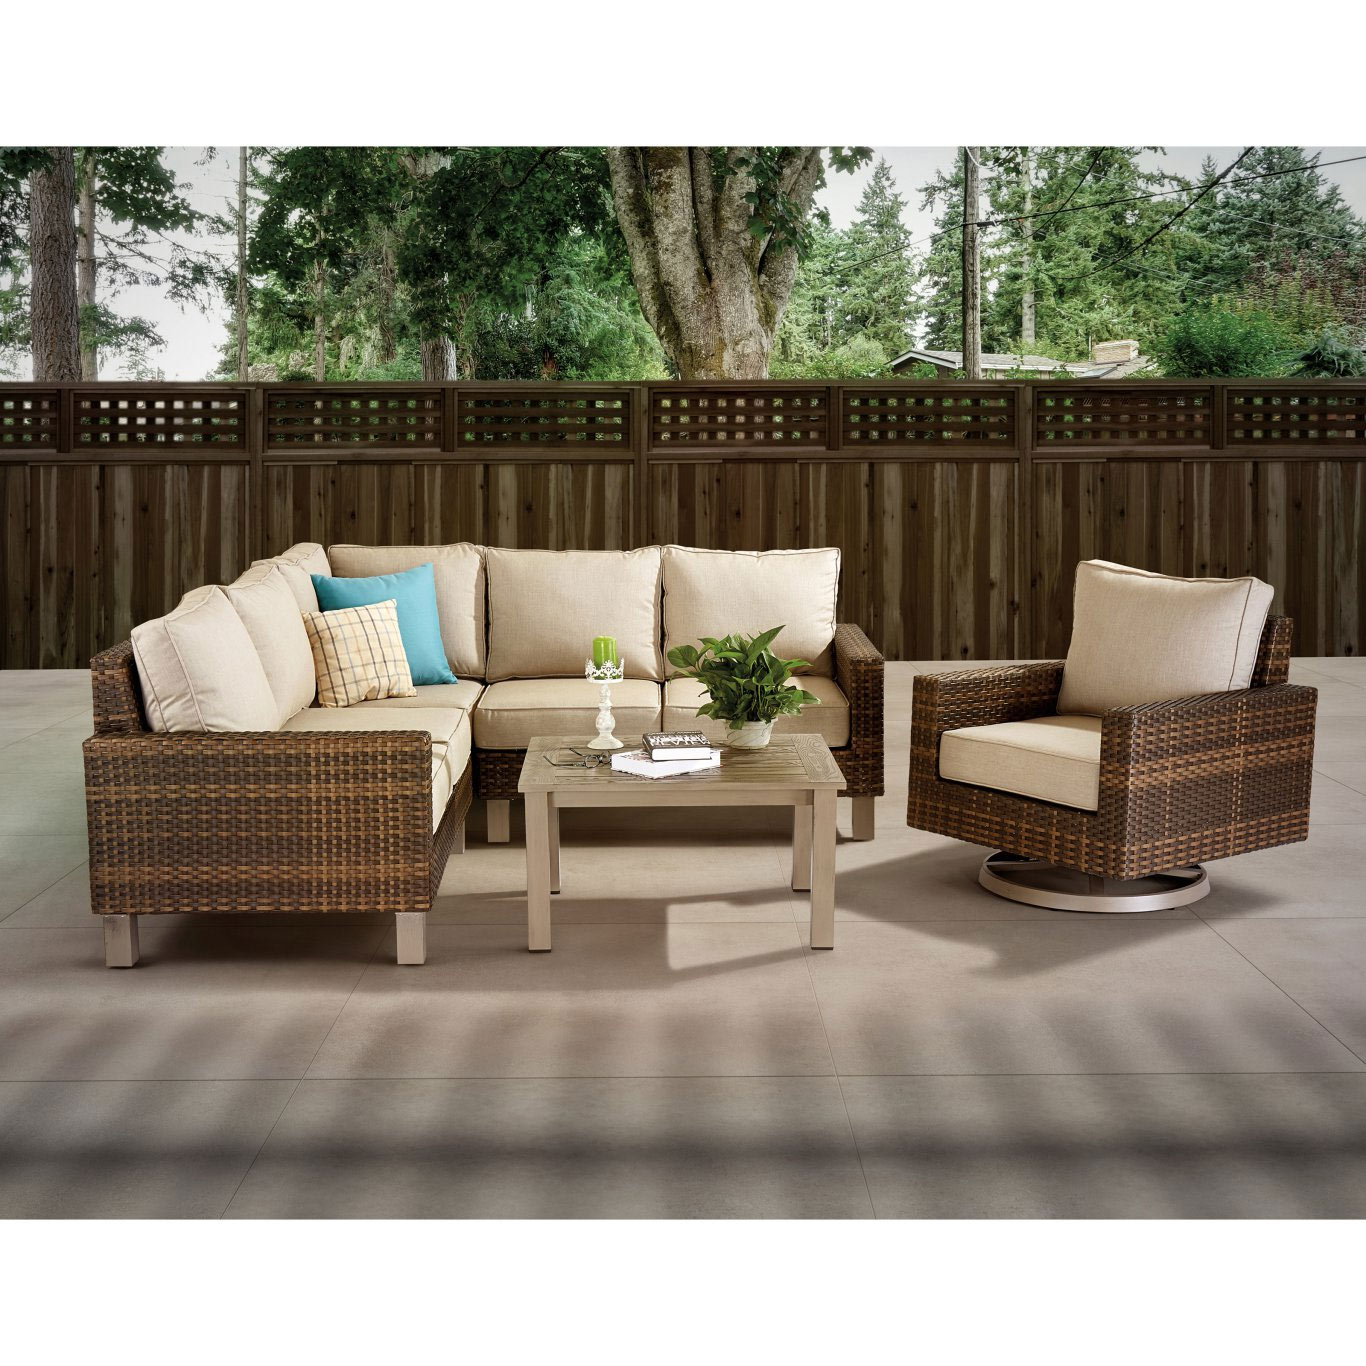 Woodard Tahoe Wicker 5pc Deep Seating | Bishop's Centre ... on Outdoor Living Wicker  id=50732